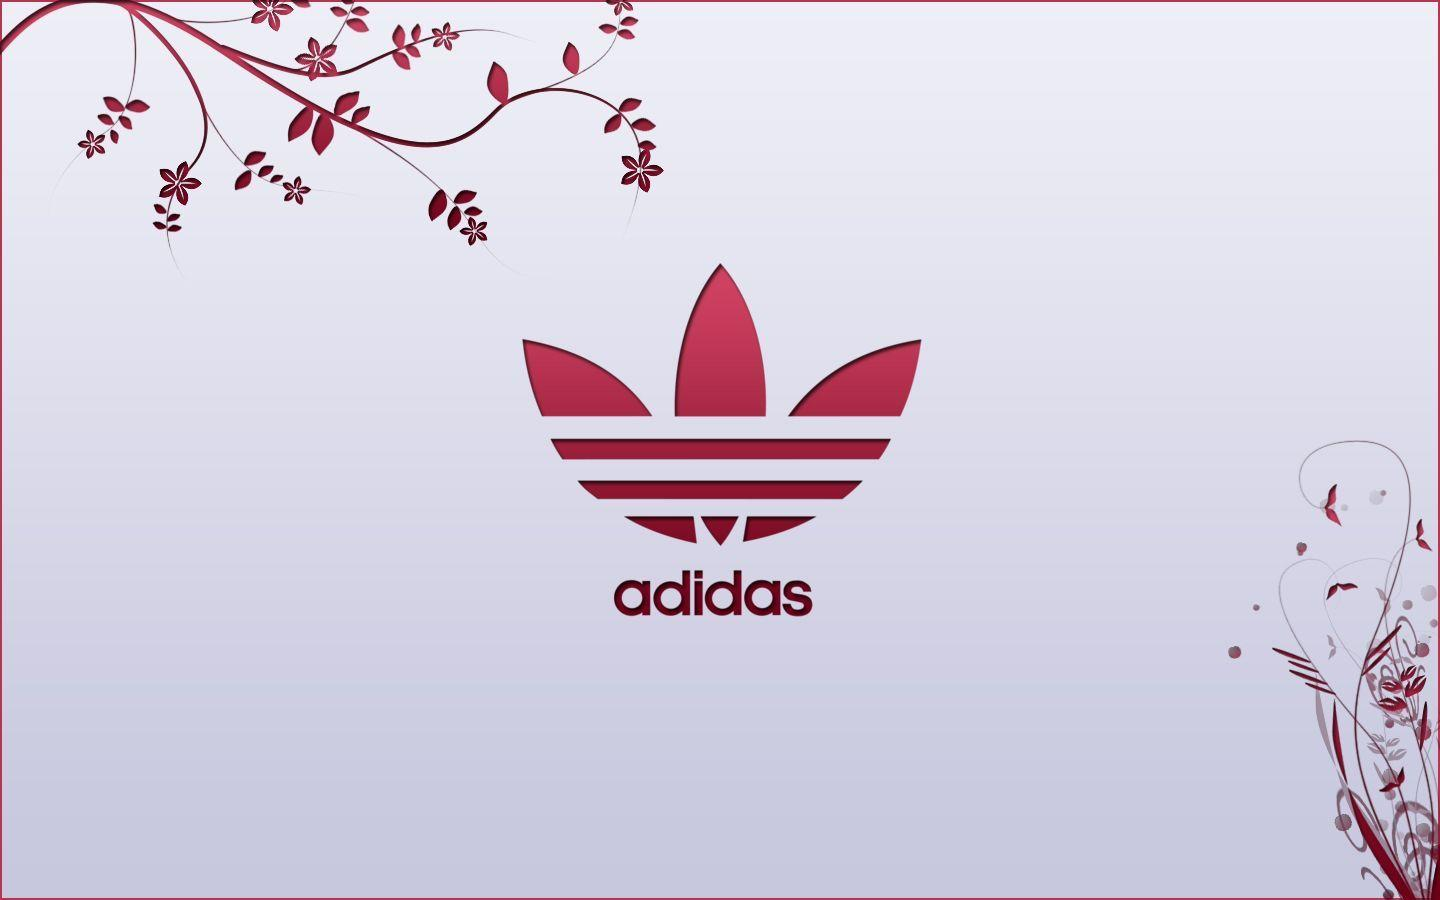 Wallpapers For > Adidas Wallpapers